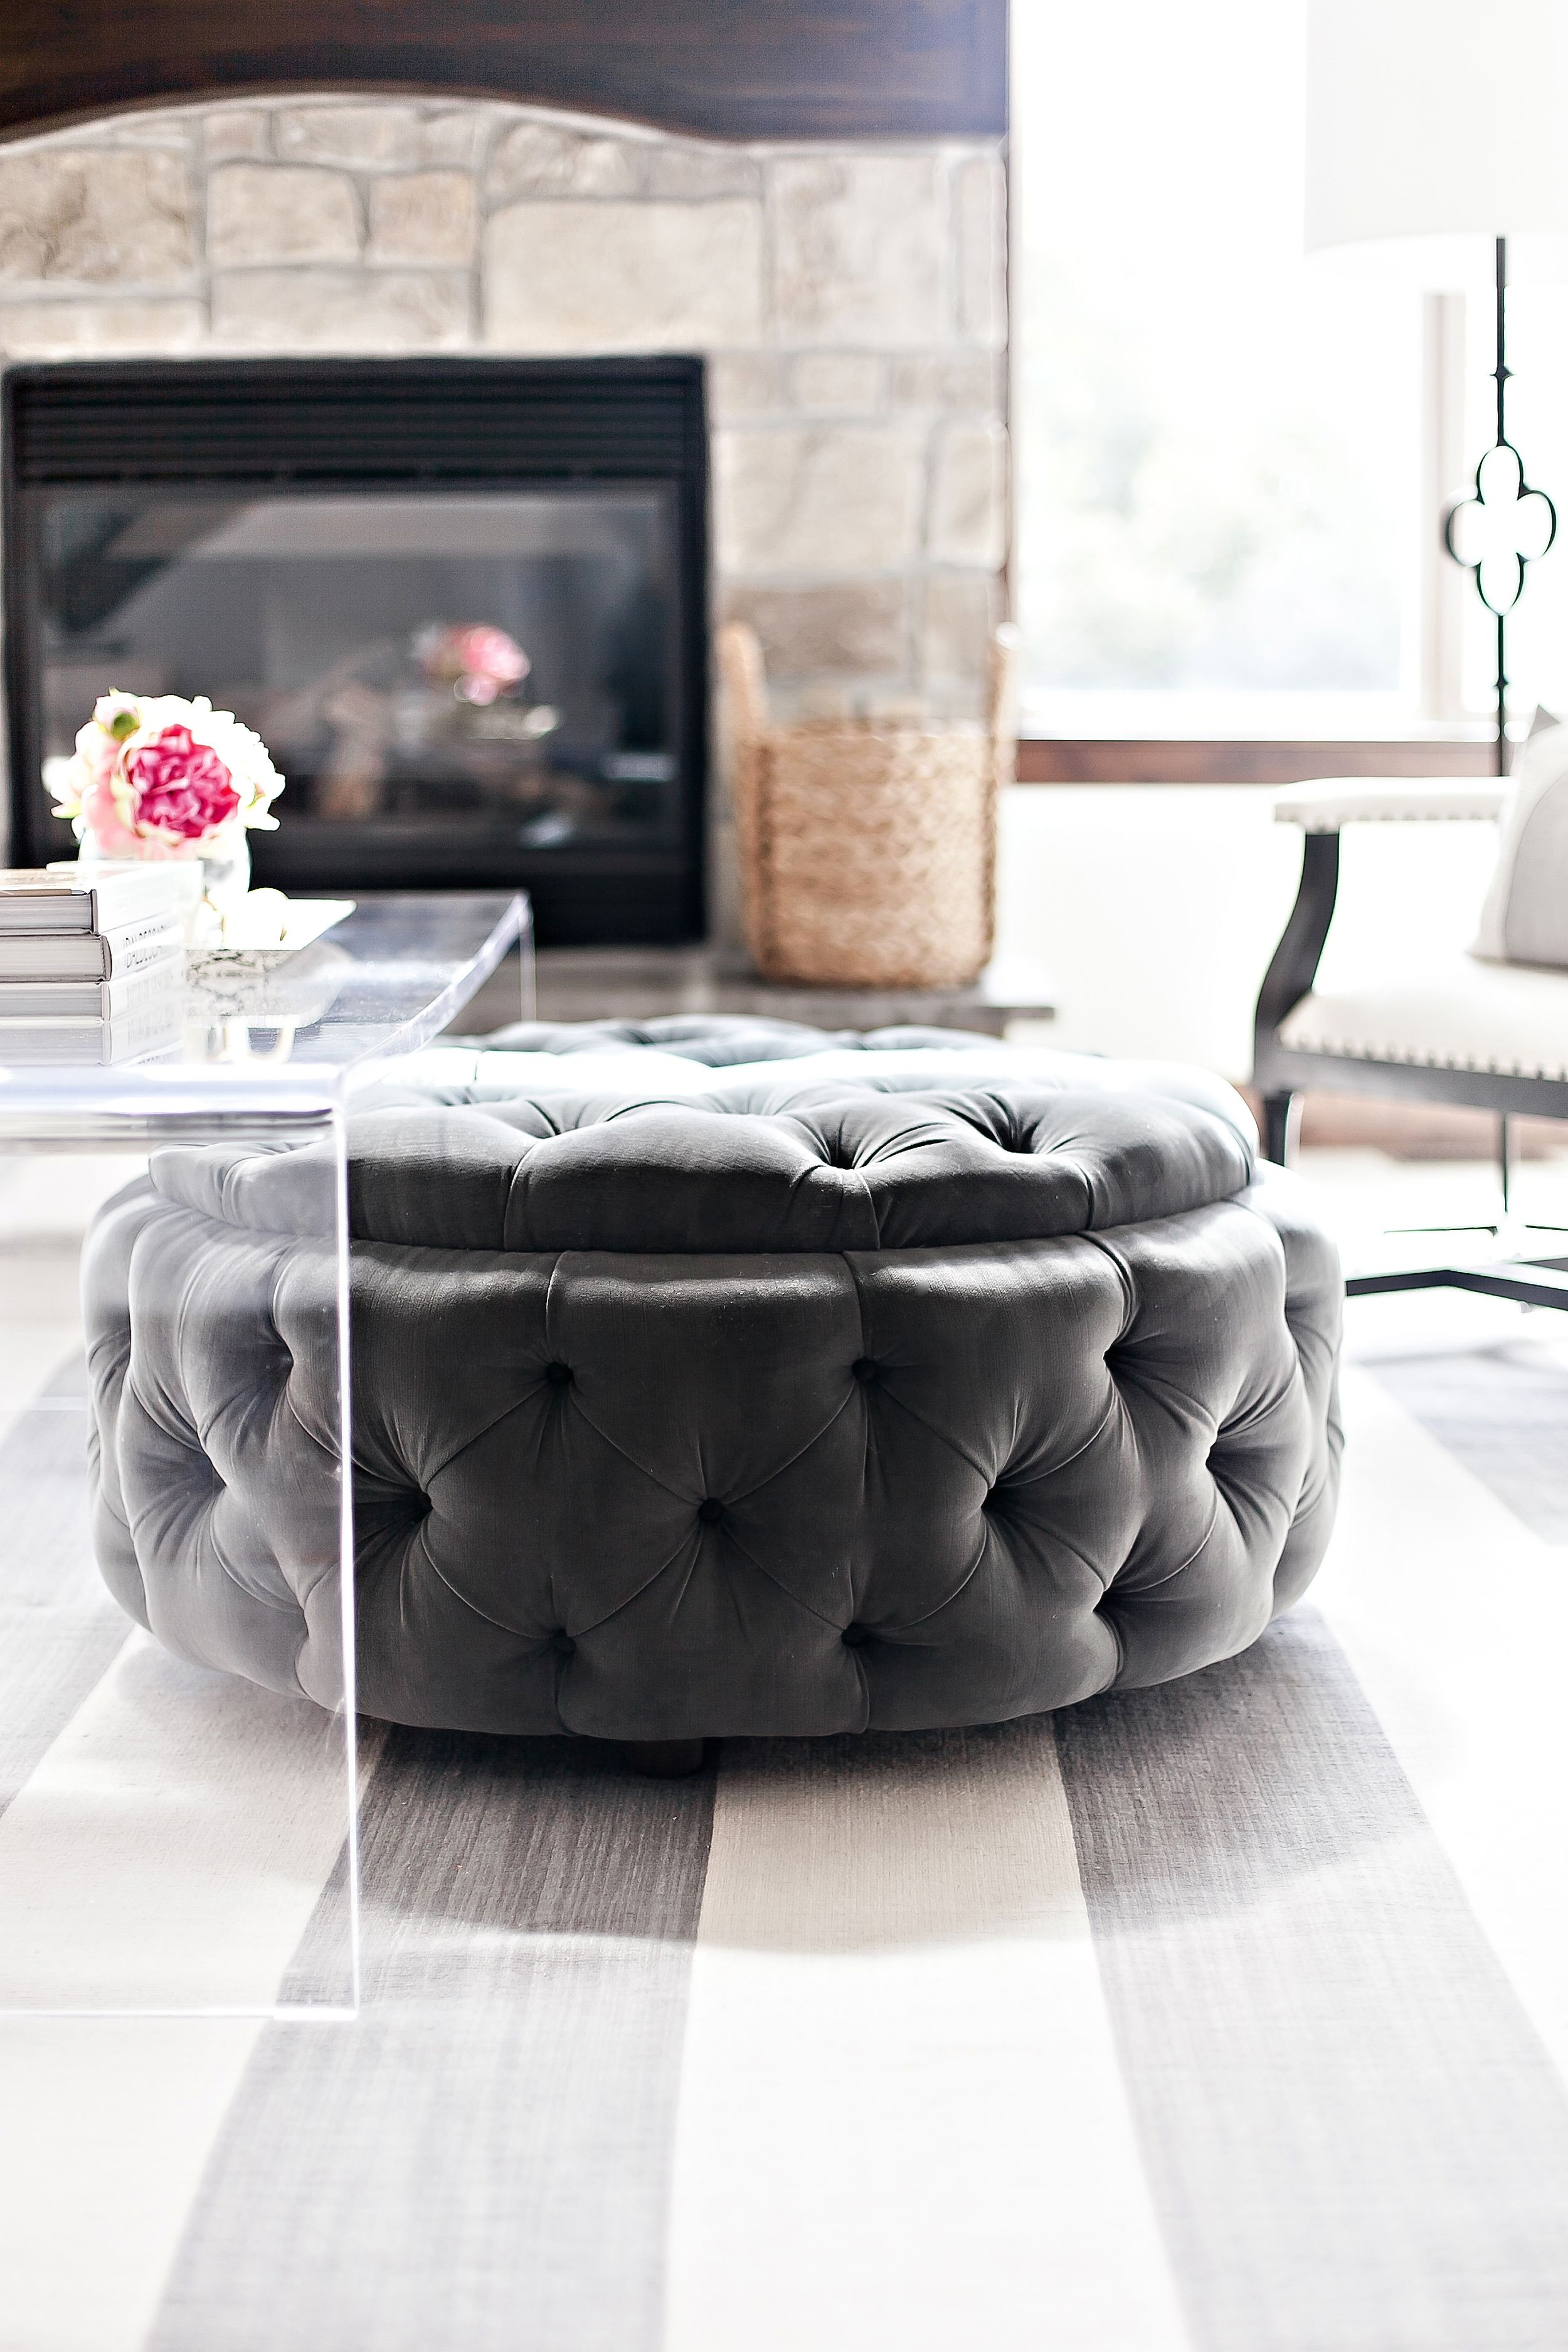 Round Upholstered Tufted Ottoman Tucked Under Acrylic Coffee Table Ideas Wit Storage Ottoman Coffee Table Upholstered Ottoman Coffee Table Acrylic Coffee Table